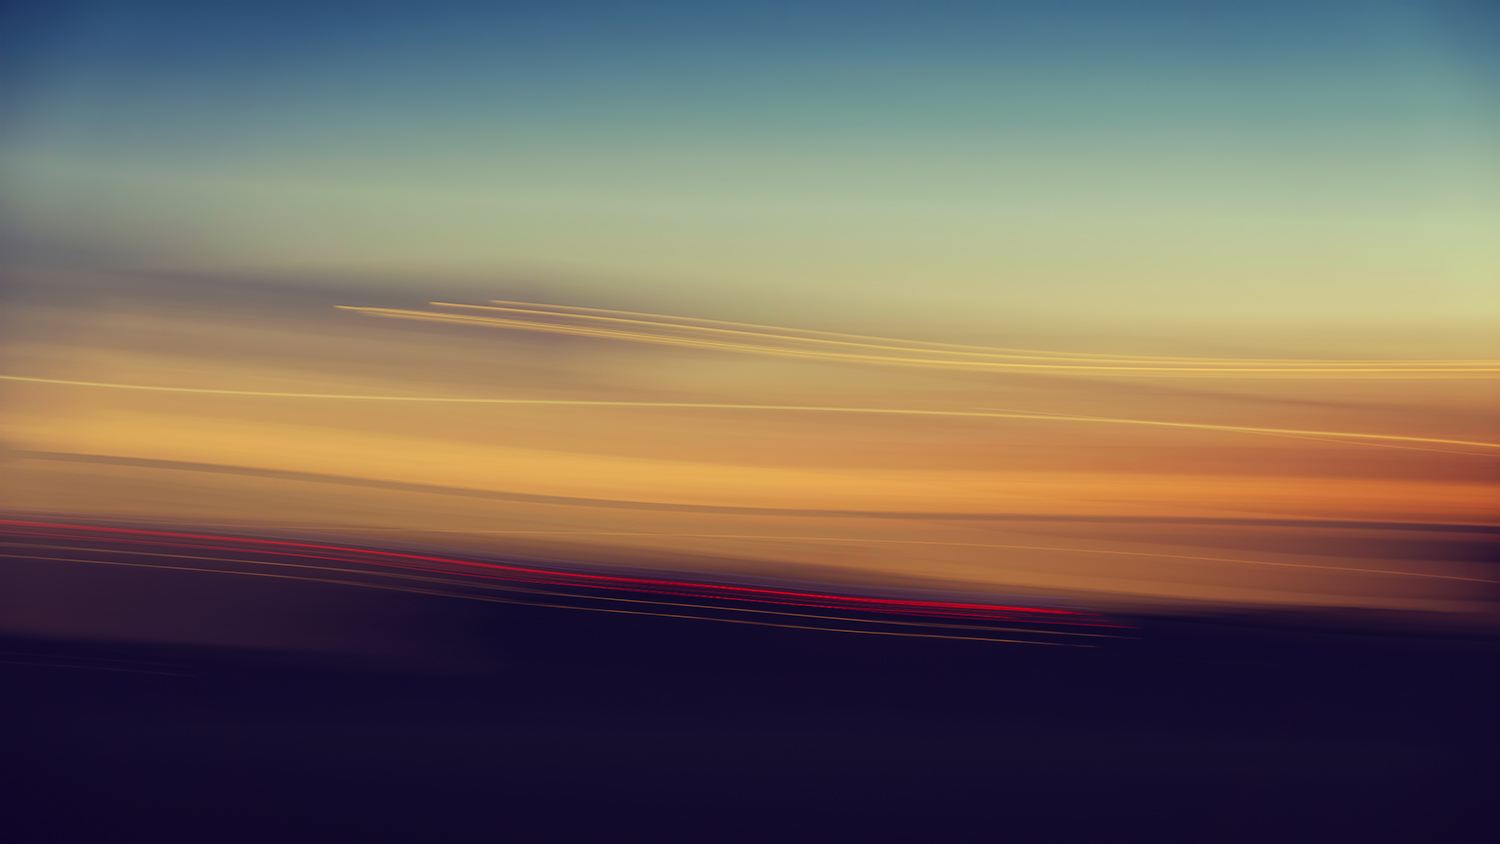 Abstract Sunset Lines in Blue and Yellow